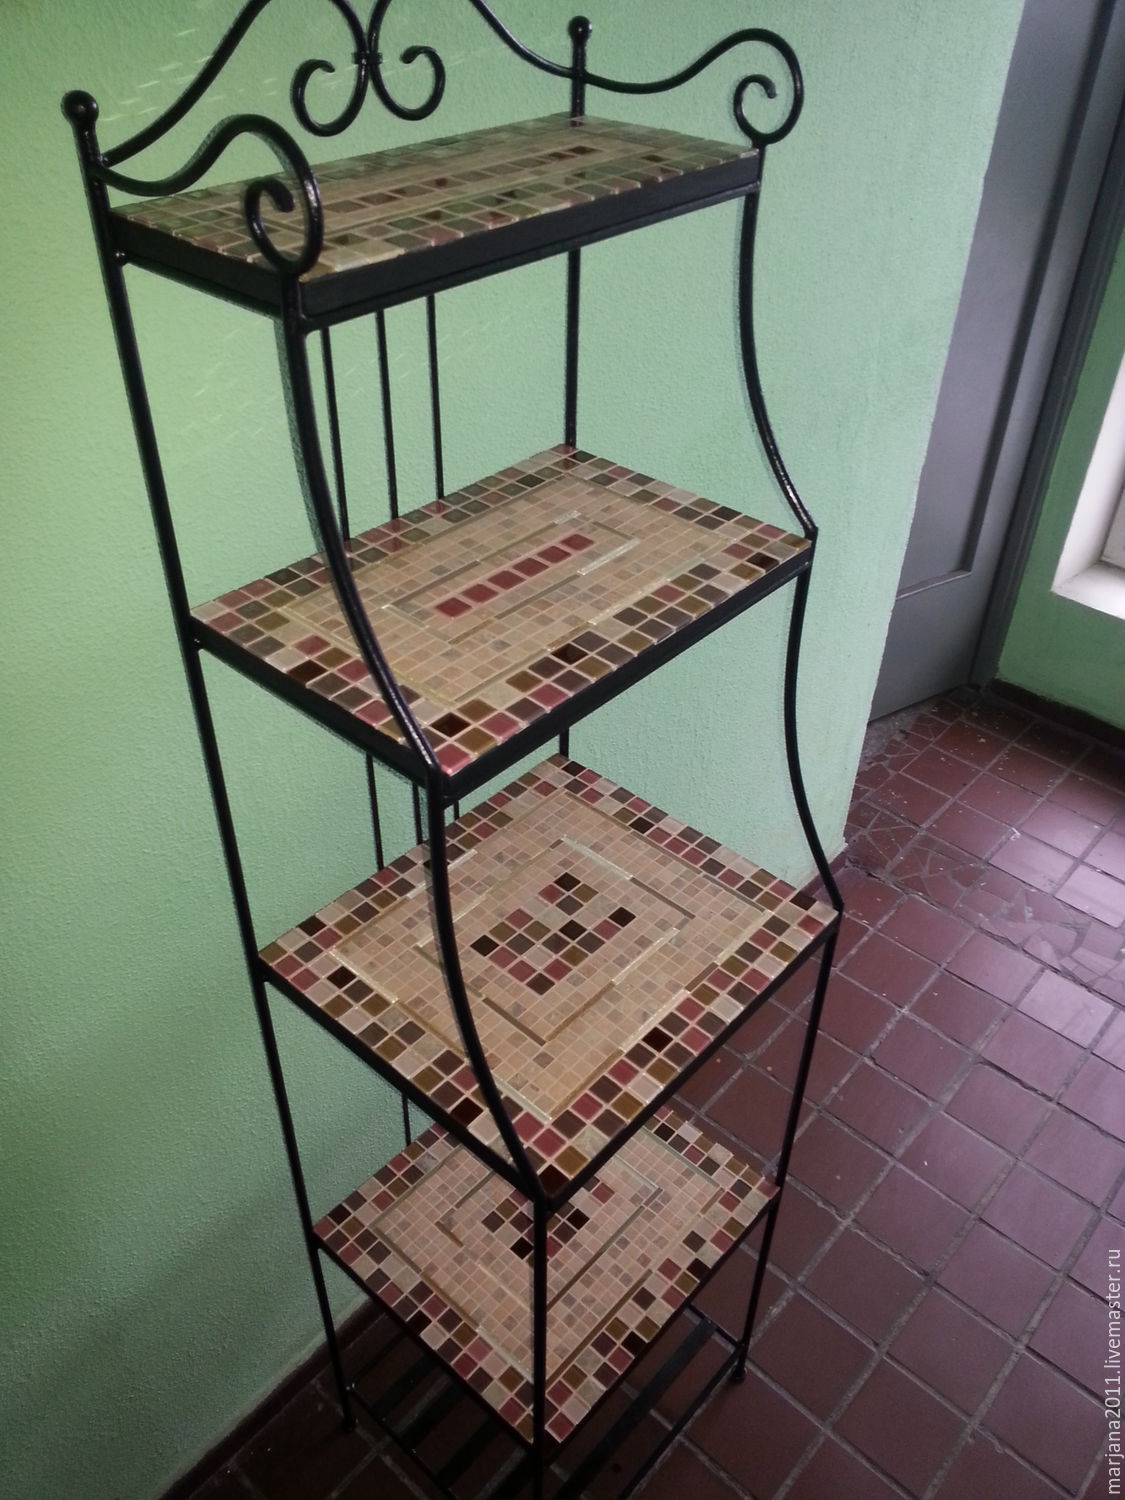 shelves racks online wrought iron india bookshelf nz